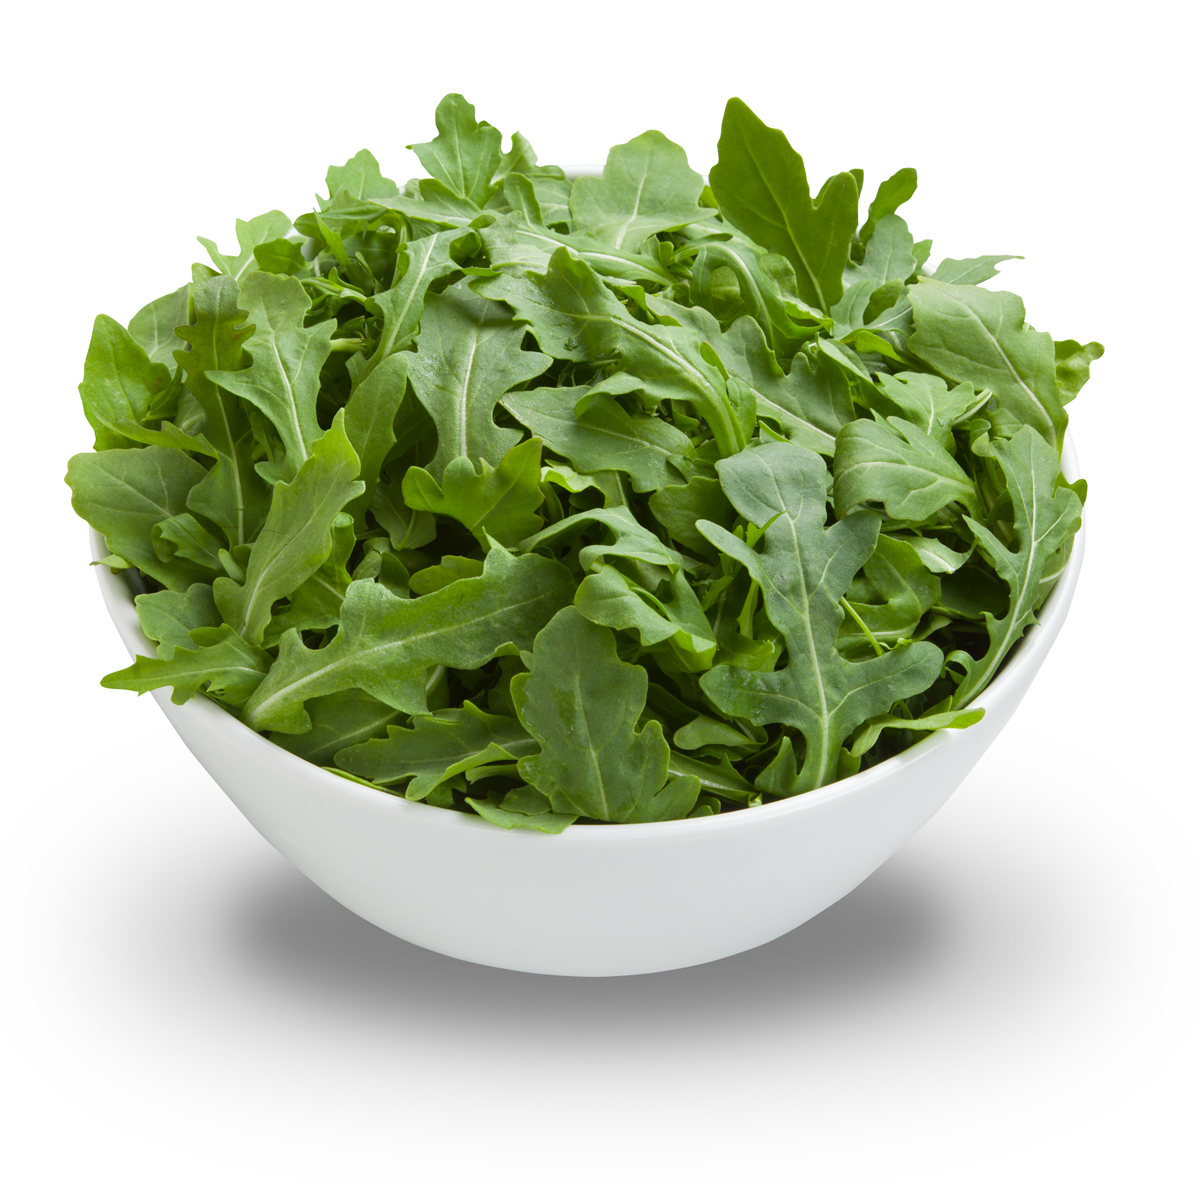 Arugula Click Image To View Healthy And Sustainable Food